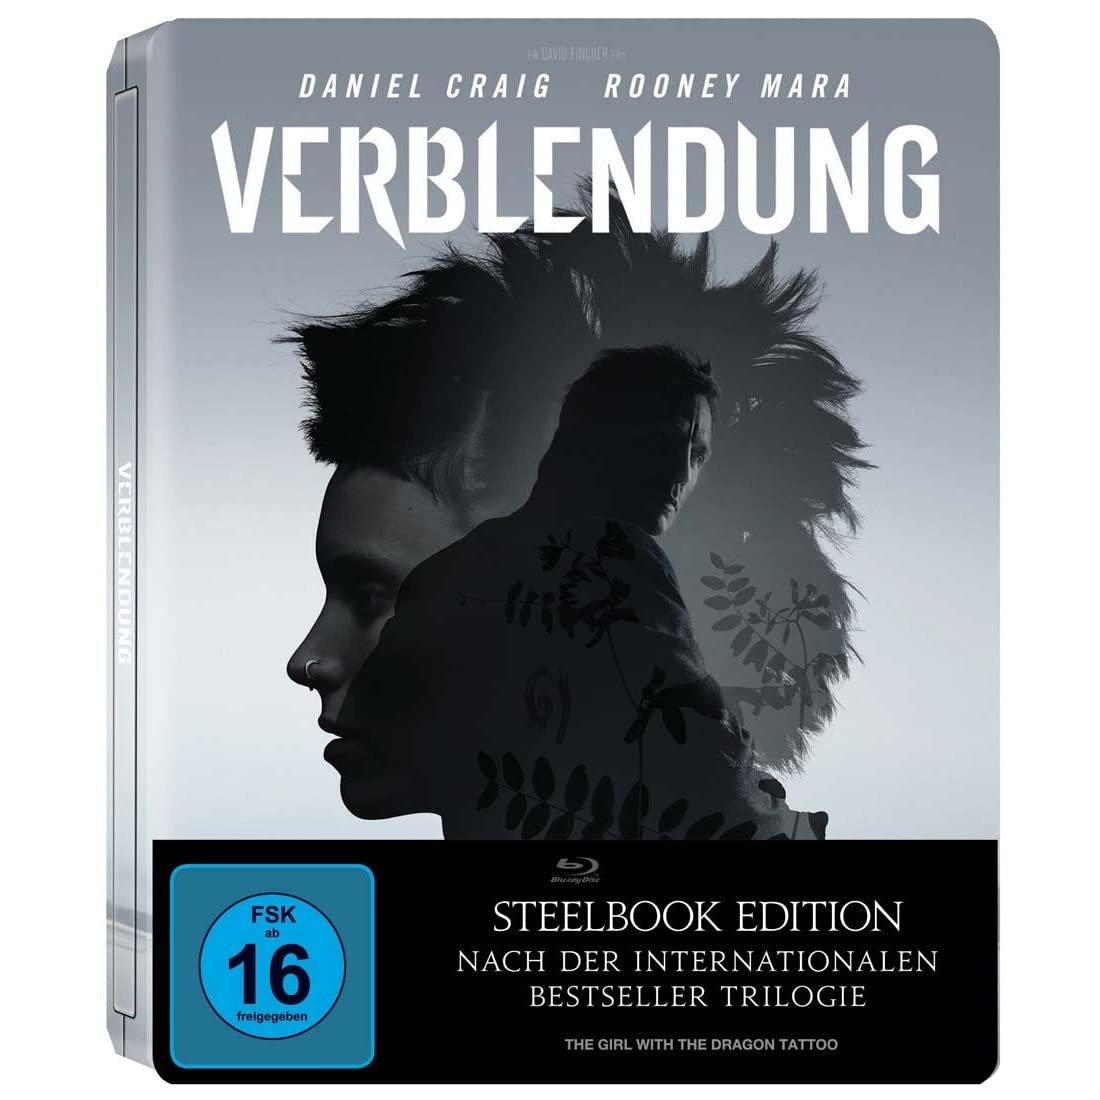 The girl with the dragon tattoo blu ray steelbook for Girl with dragon tattoo books in order